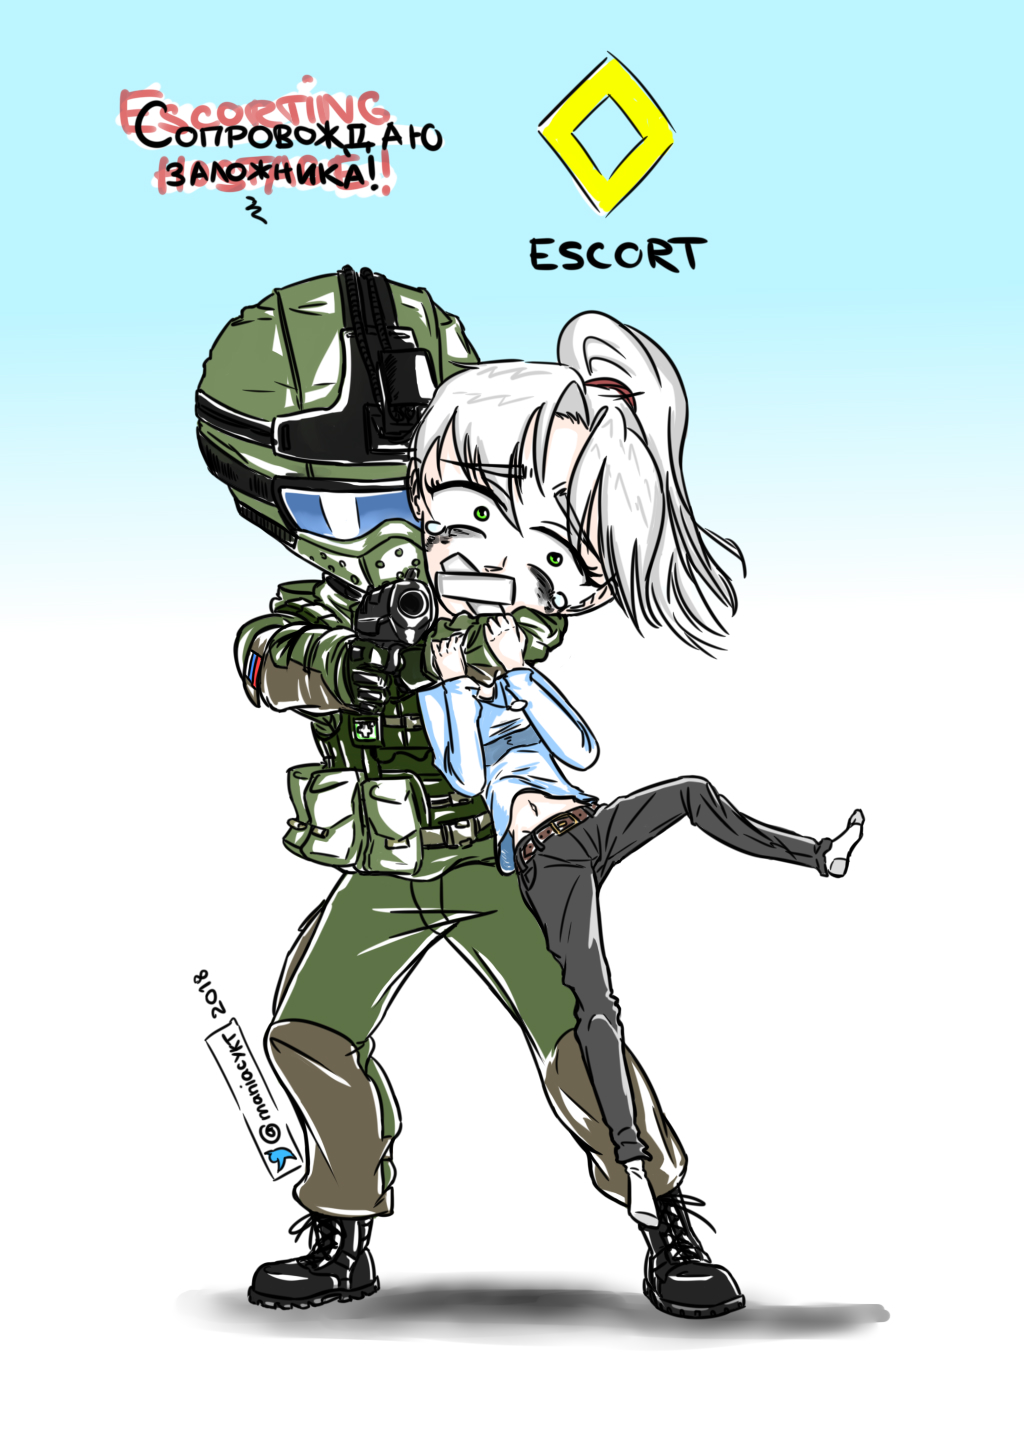 https://orig00.deviantart.net/56a7/f/2018/225/8/3/escorting_hostage__by_maniac_kagesenshi-dck1zi1.jpg